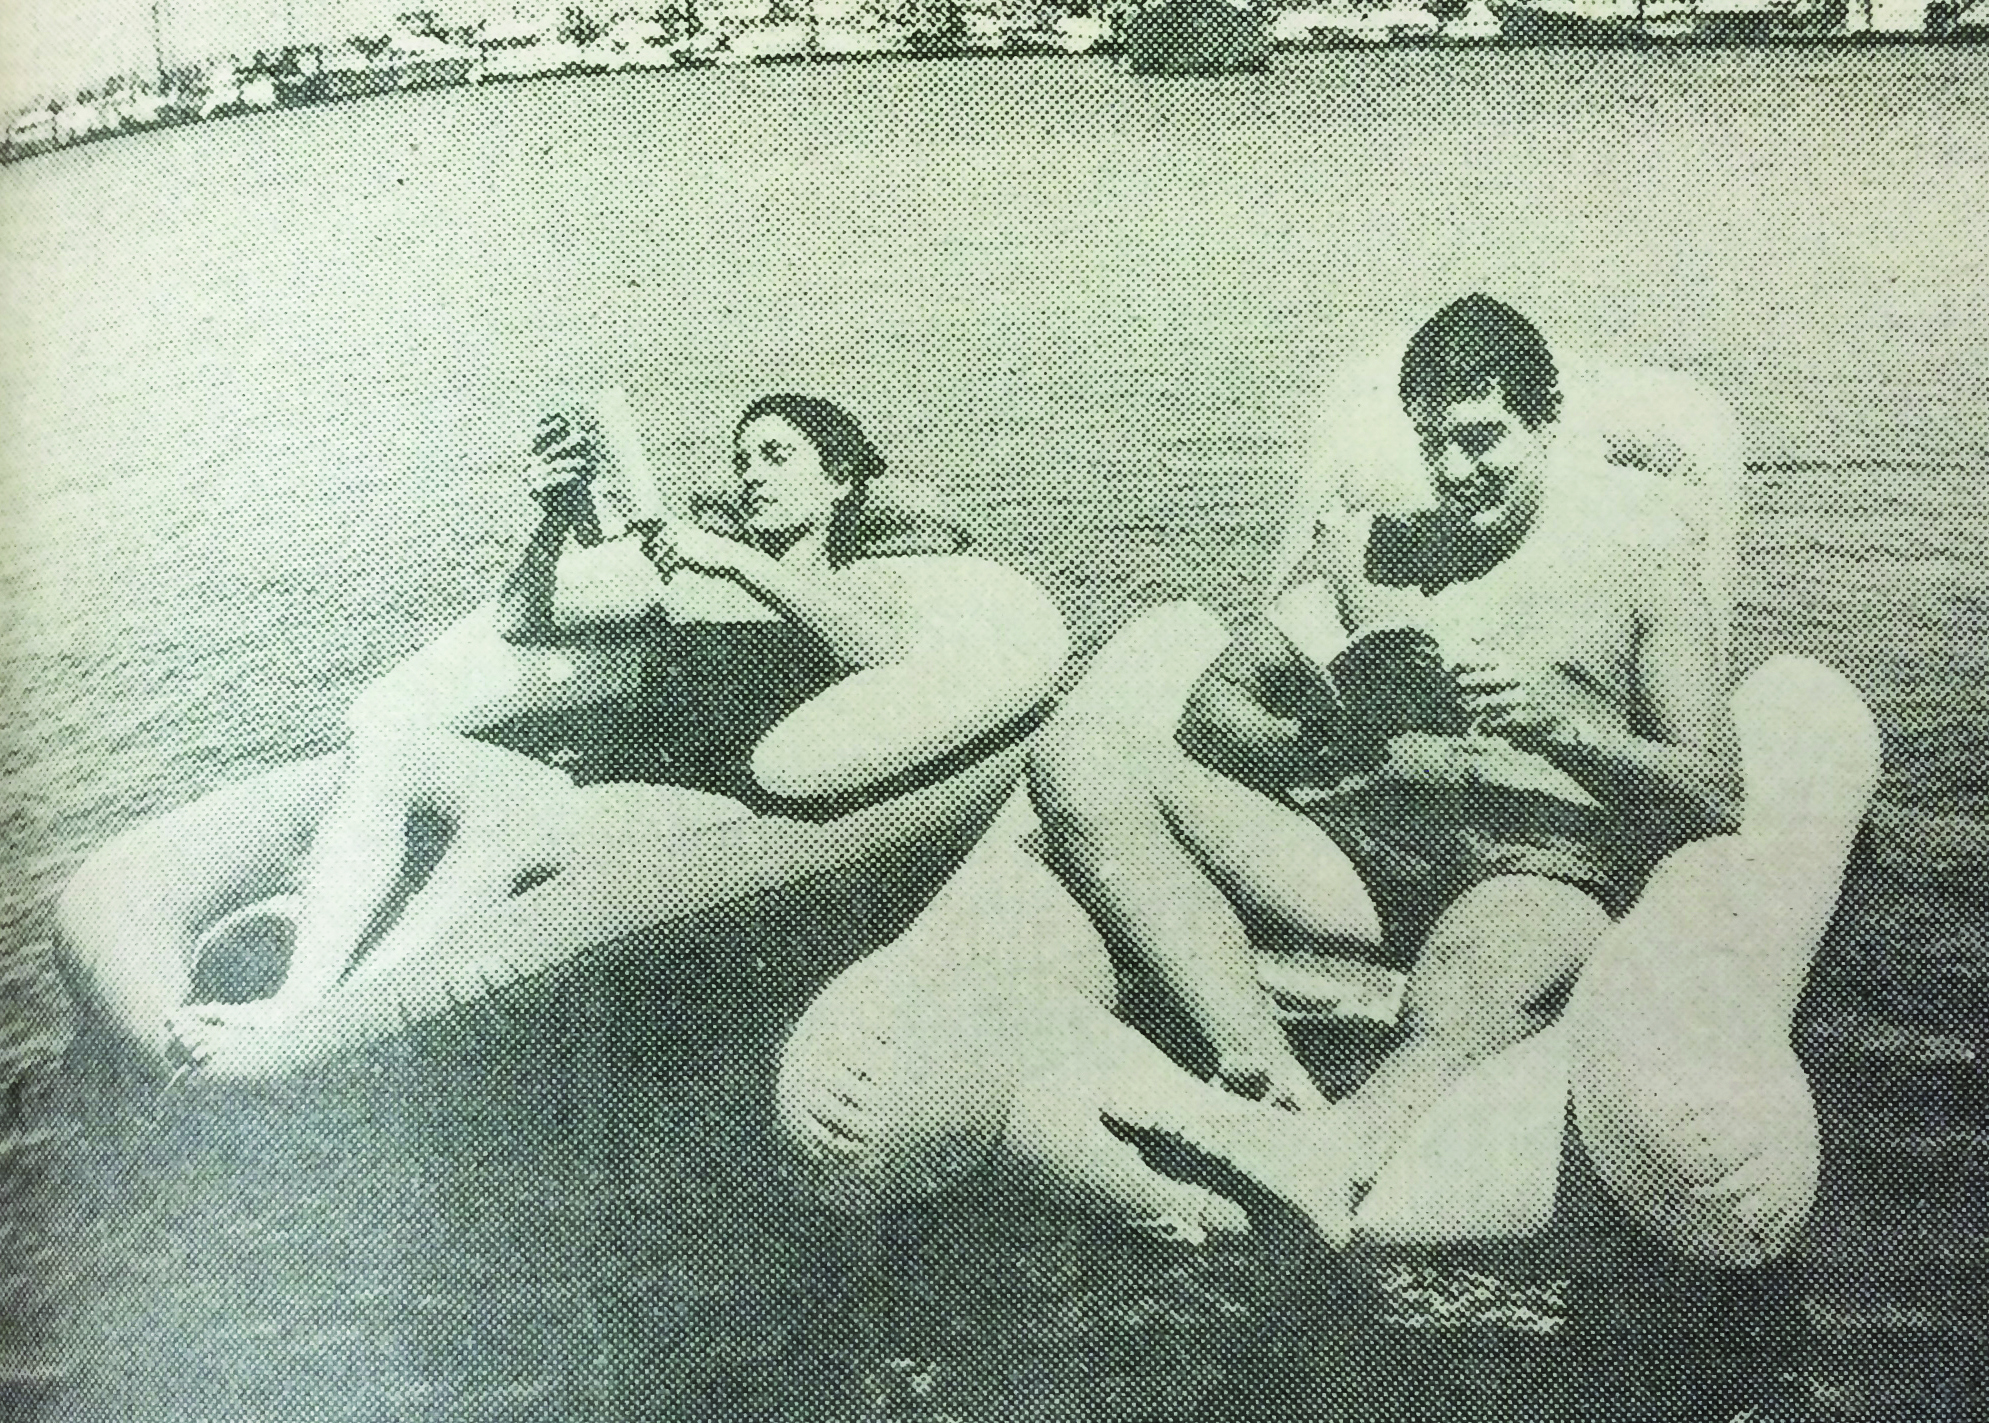 1979: Cooling Off